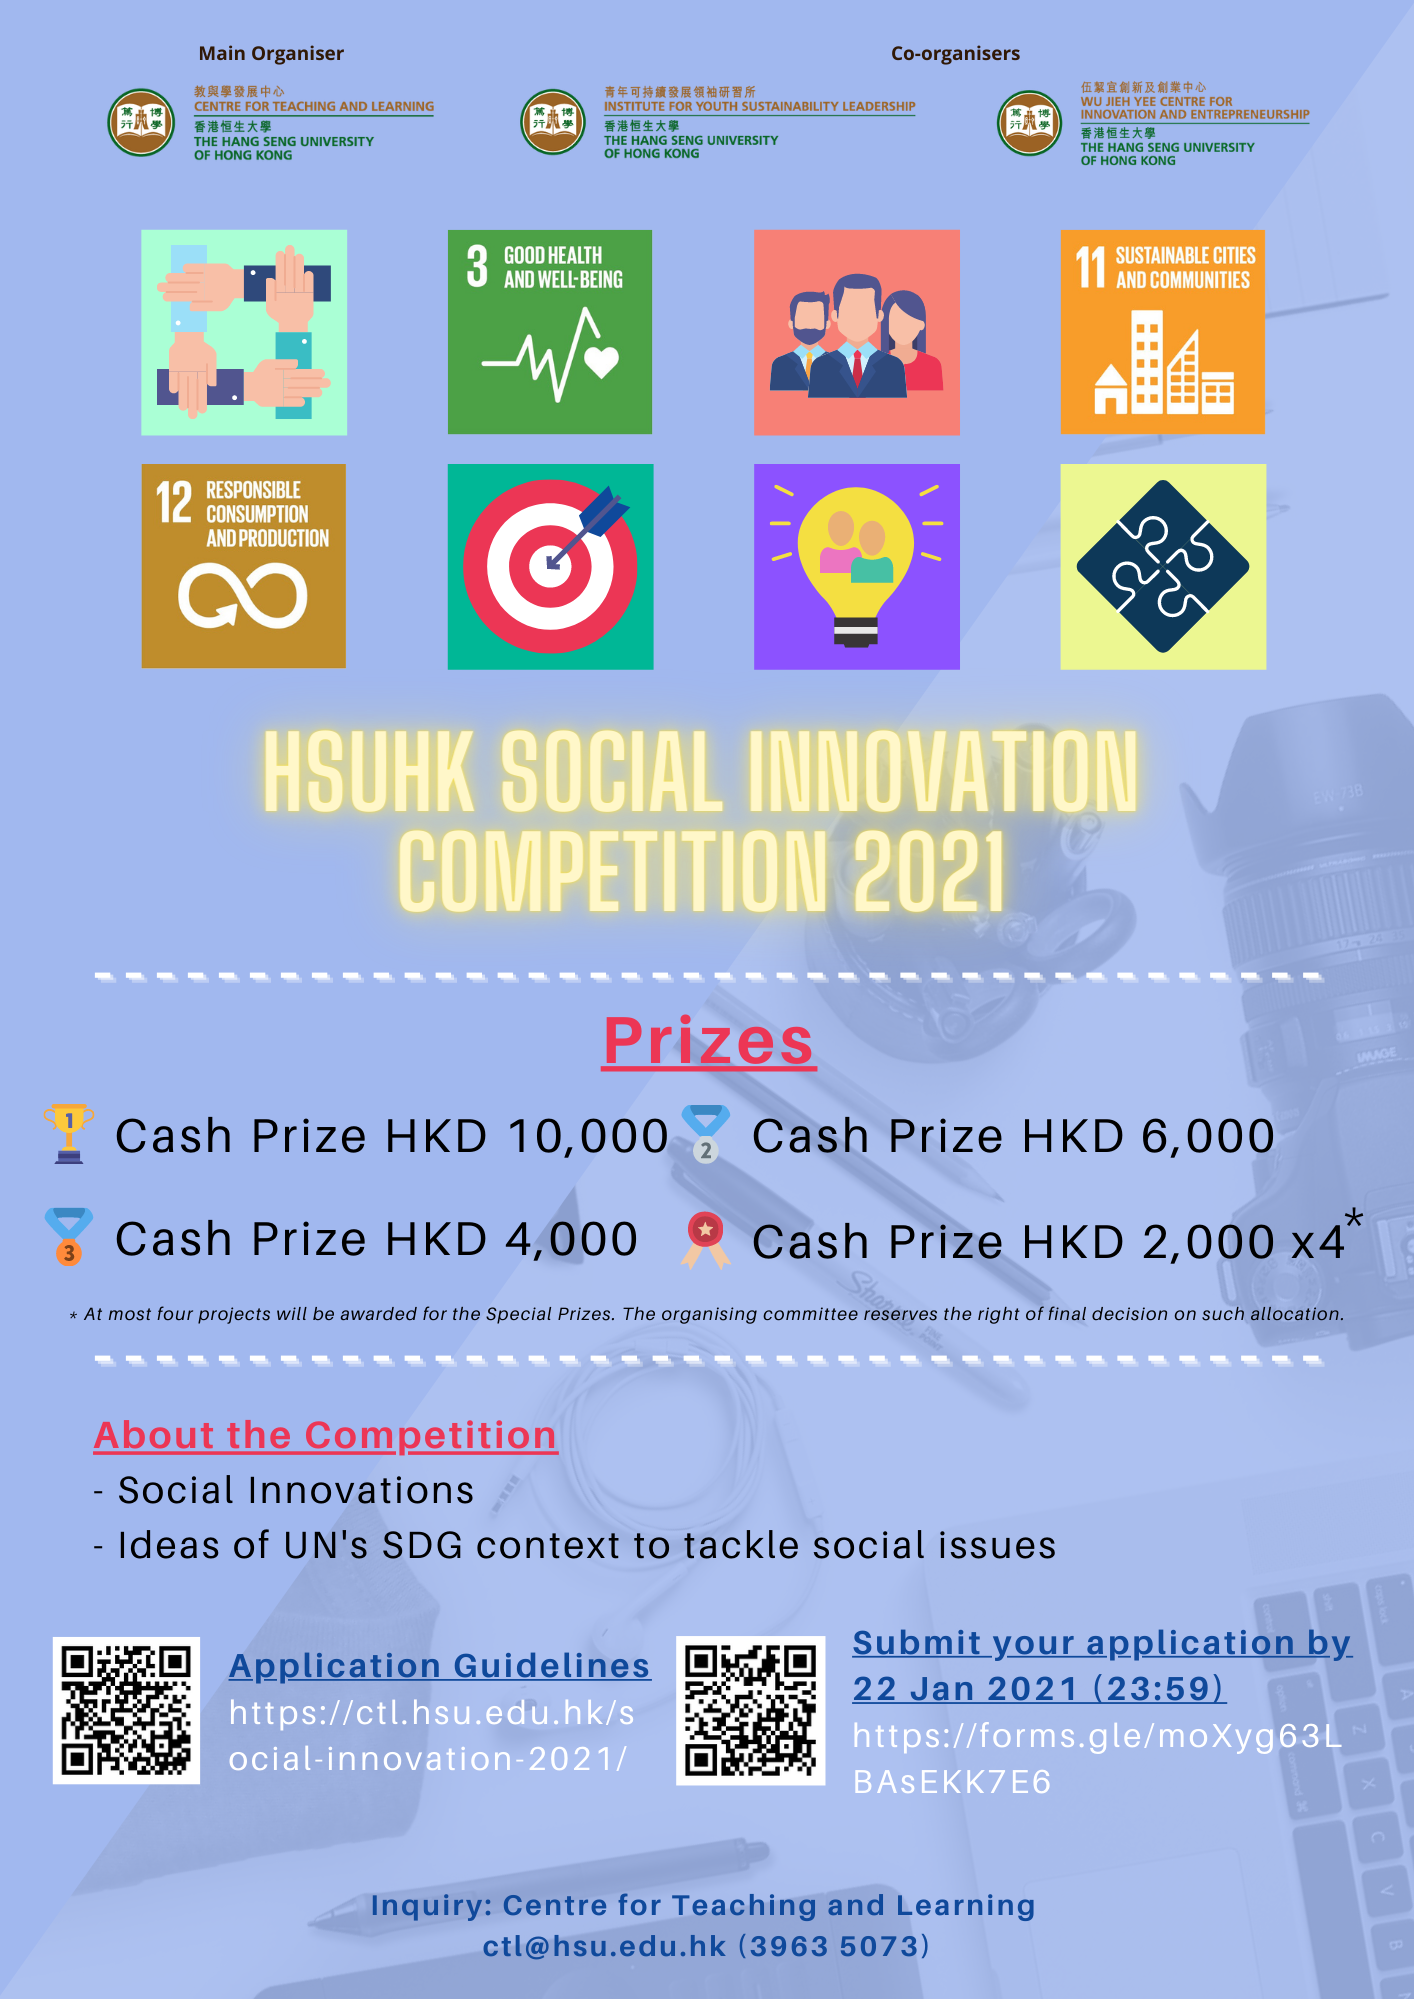 Social_Innovation_Competition_2021_Competition_Poster